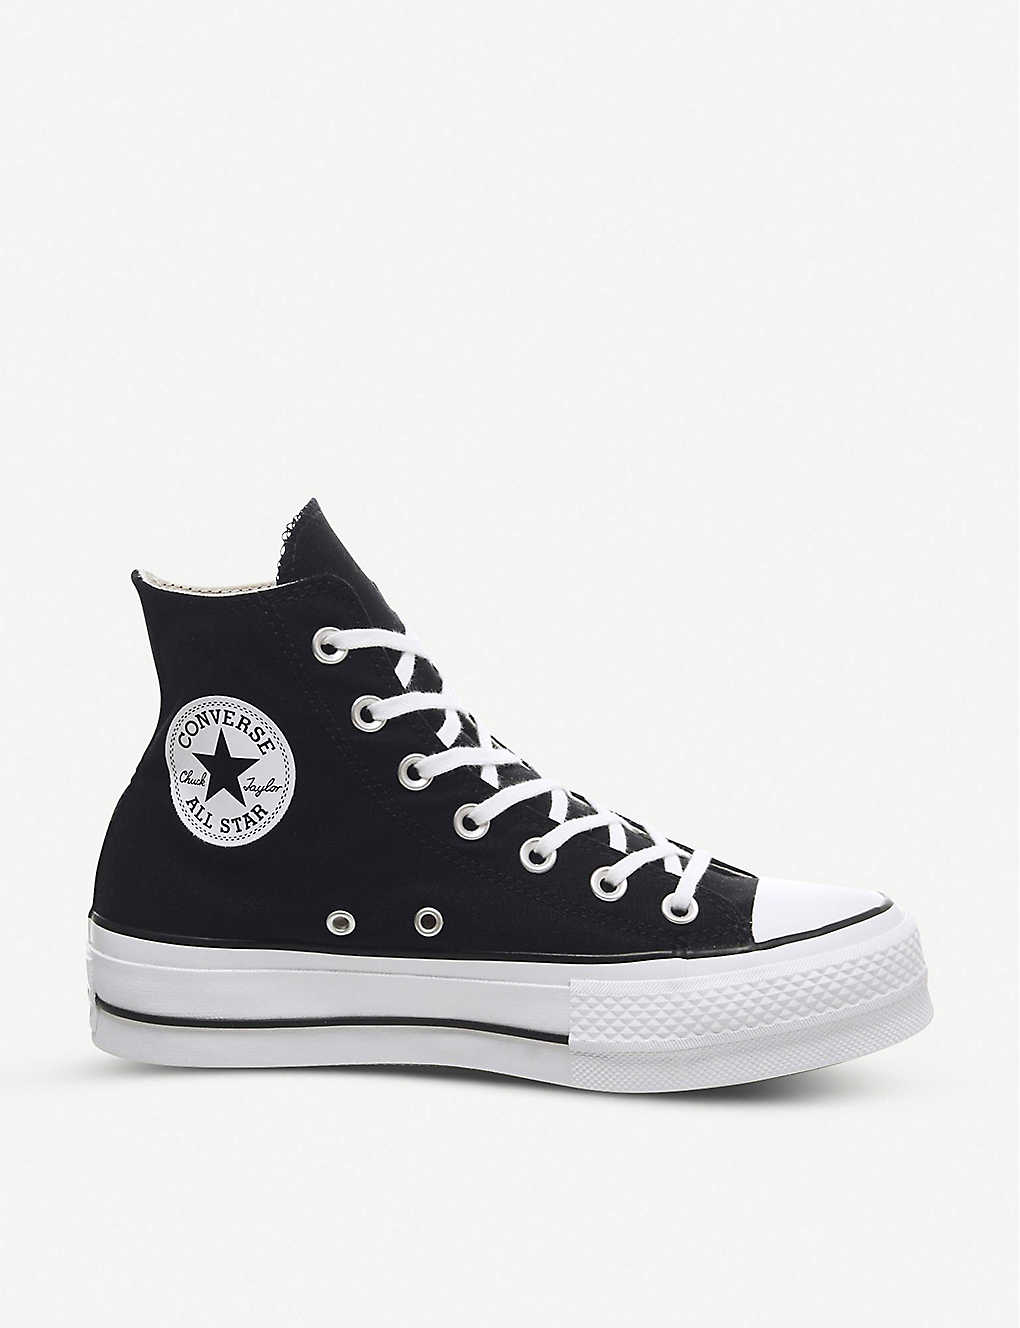 431d72c2e846 Chuck Taylor All Star Lift high-top flatform trainers - Black white ...